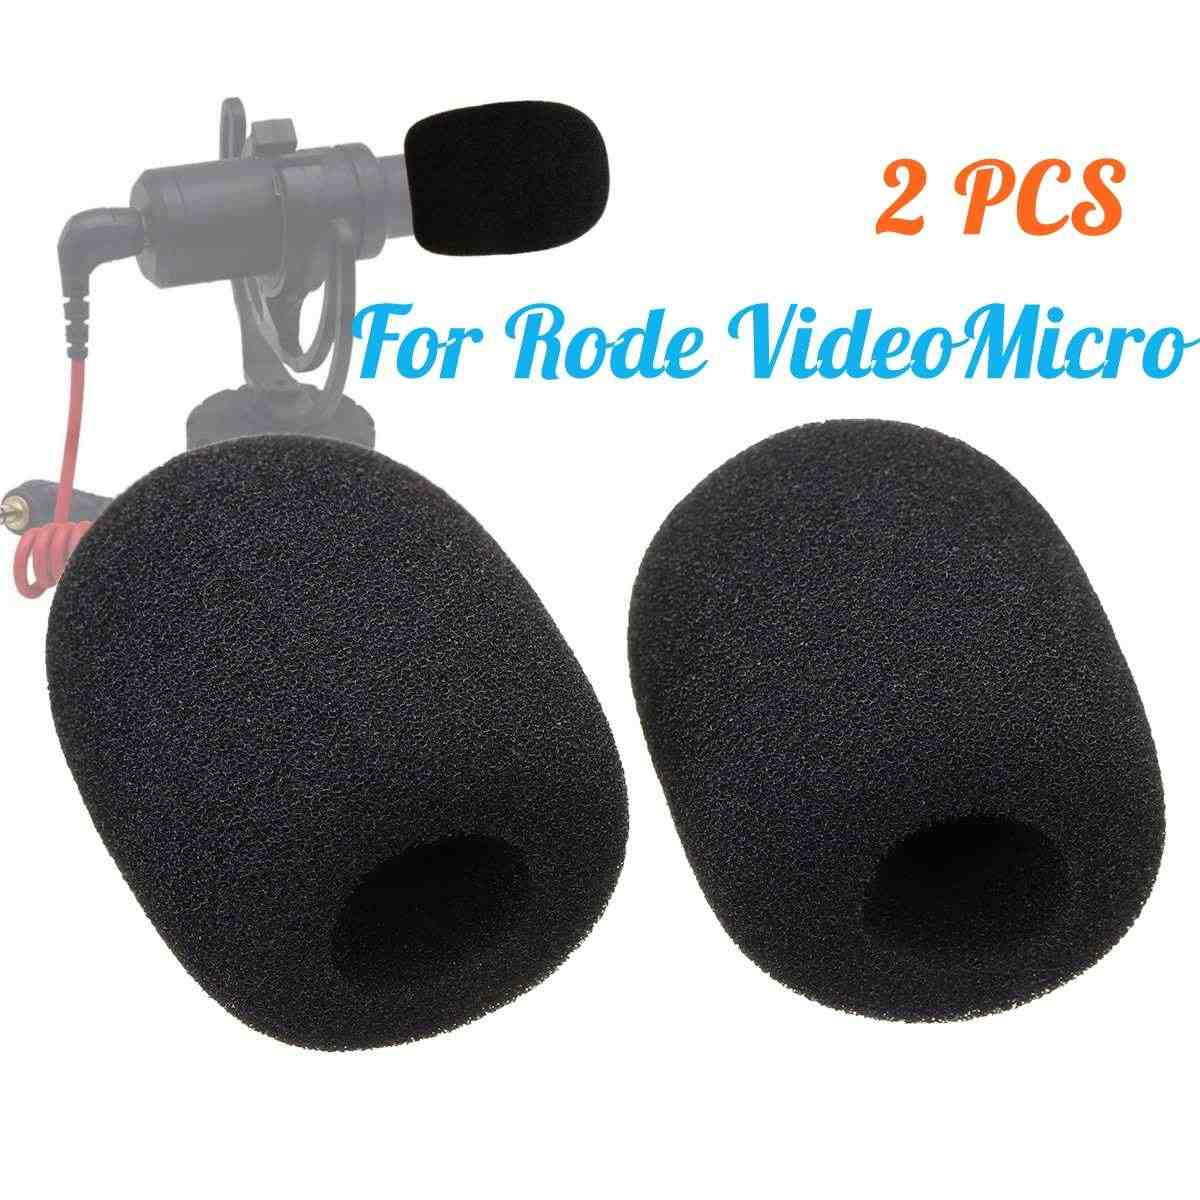 1Pair Microphone Windshield Sponge Foam Cover For Rode VideoMicro Audio